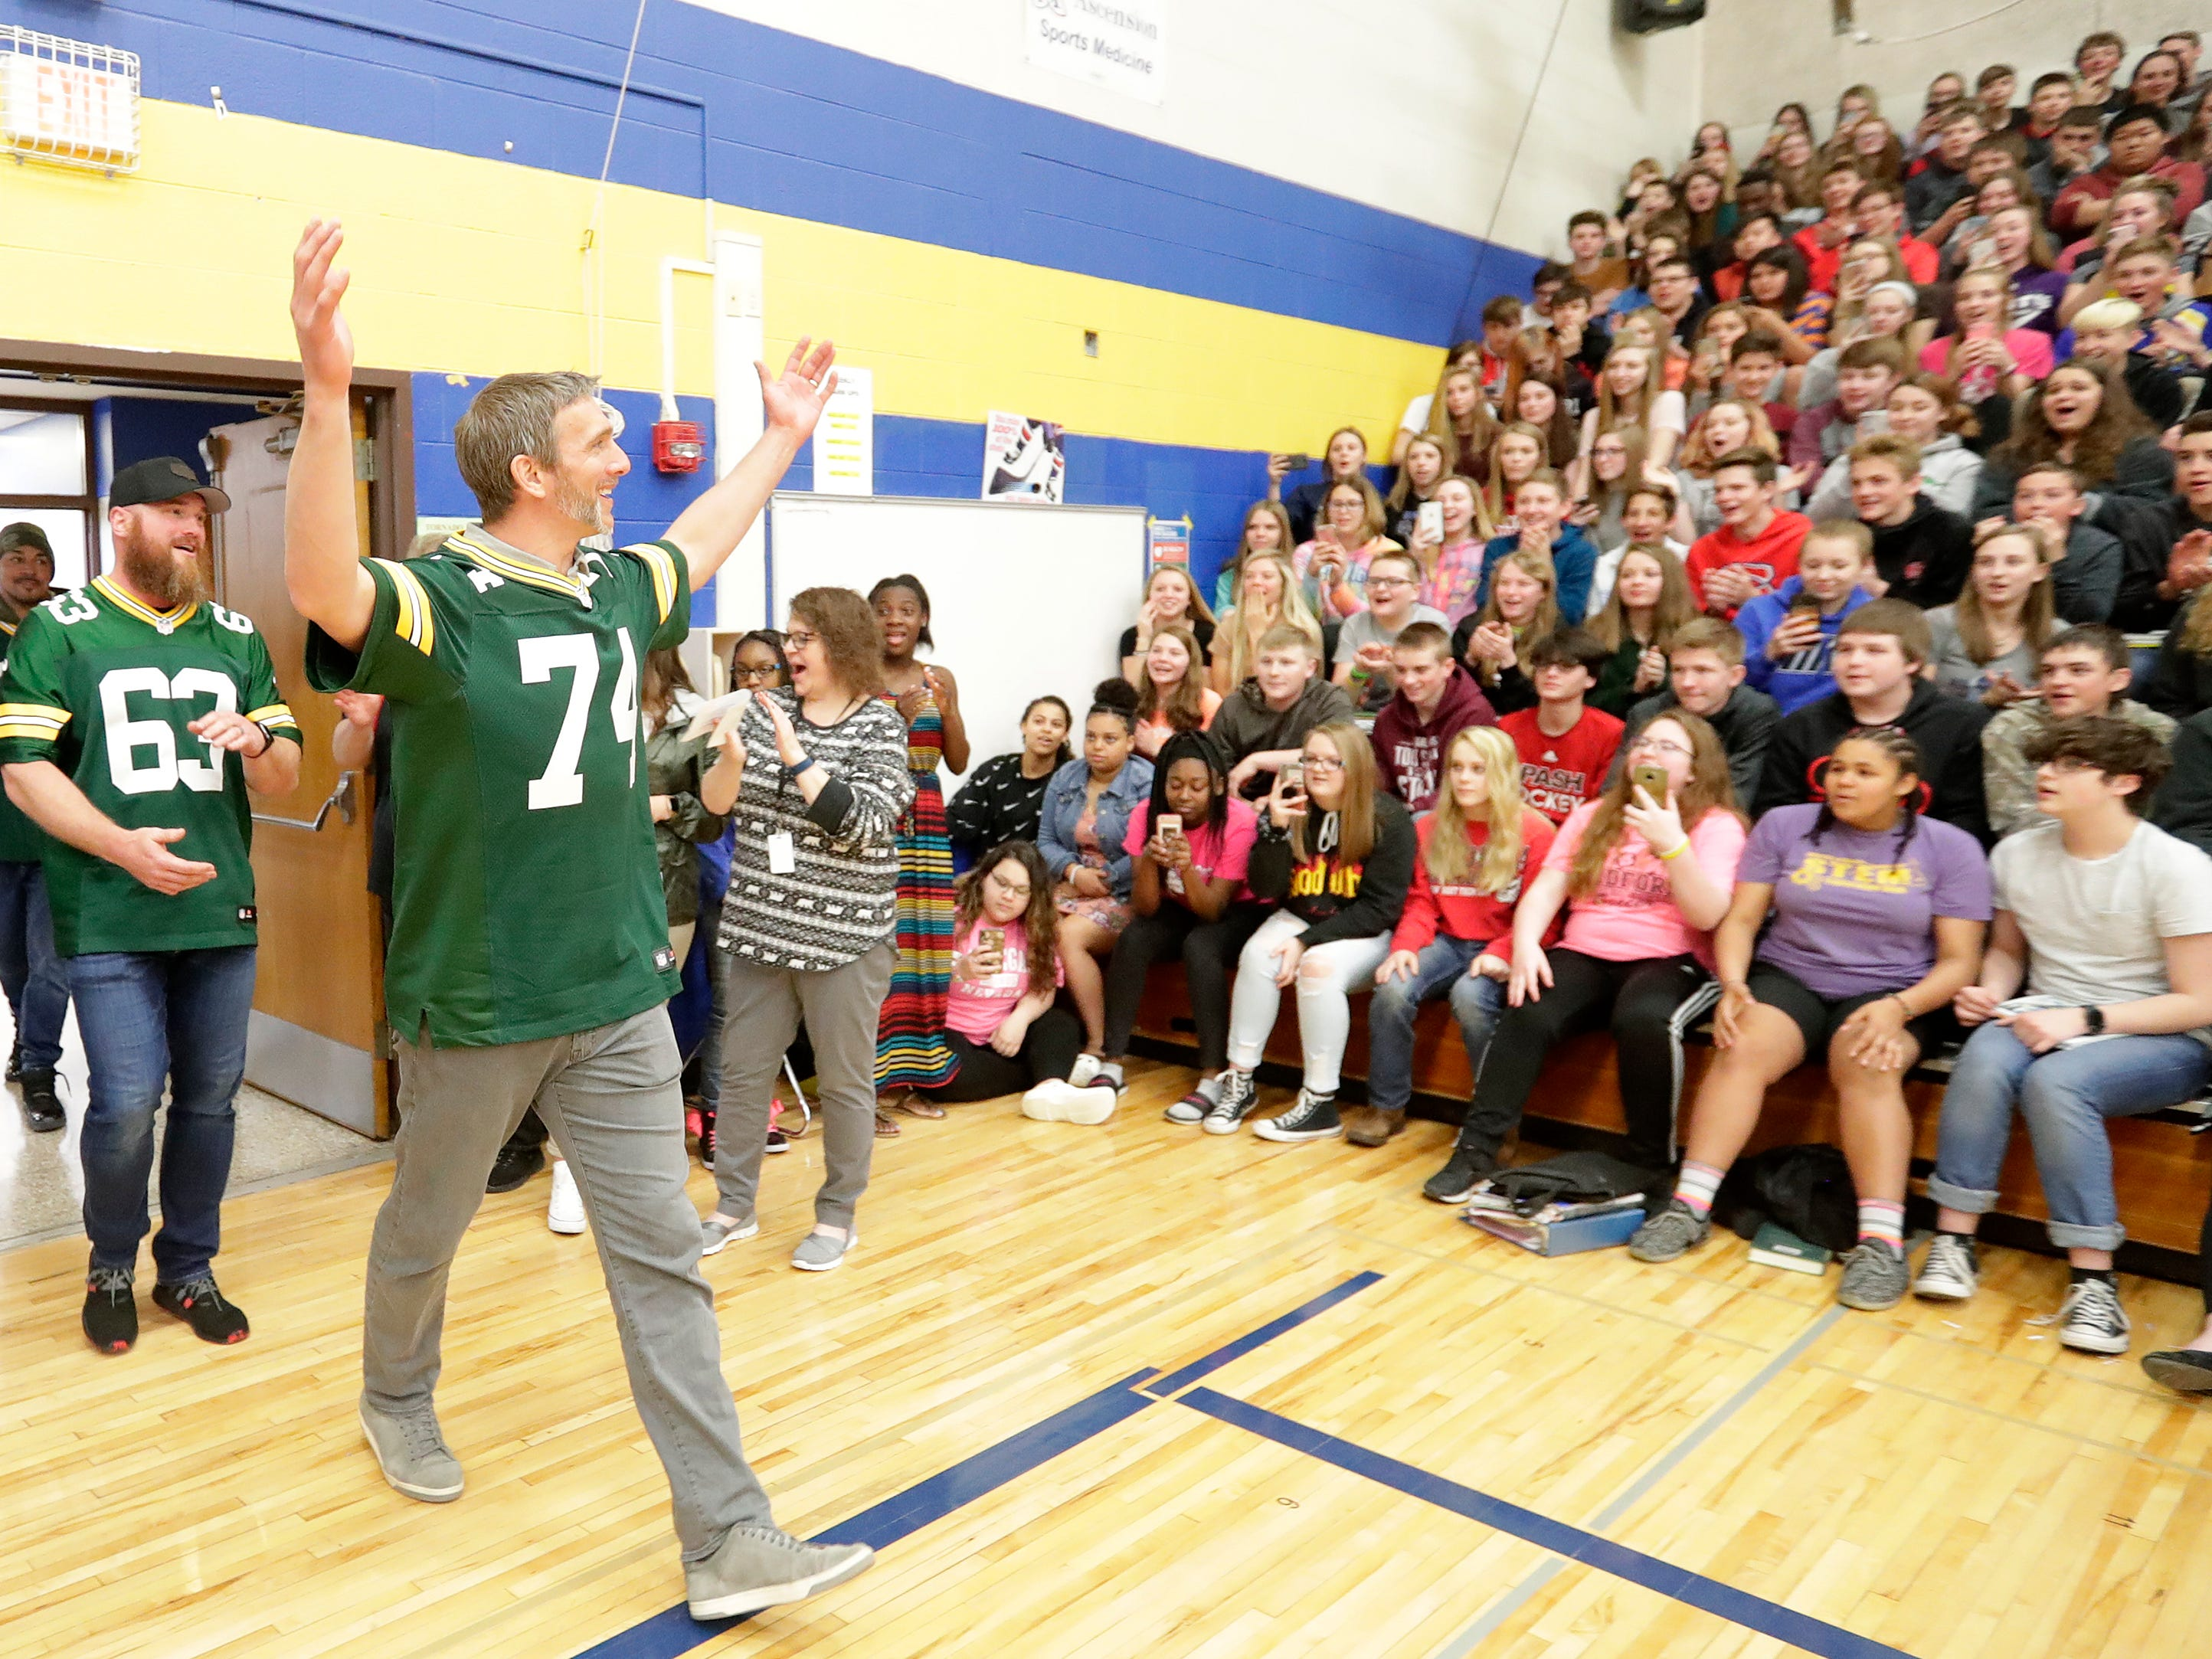 Former Green Bay Packers players Aaron Kampman and Scott Wells arrive for a stop on the Packers Tailgate Tour at Ben Franklin Junior High High School on Tuesday, April 9, 2019 in Stevens Point, Wis.